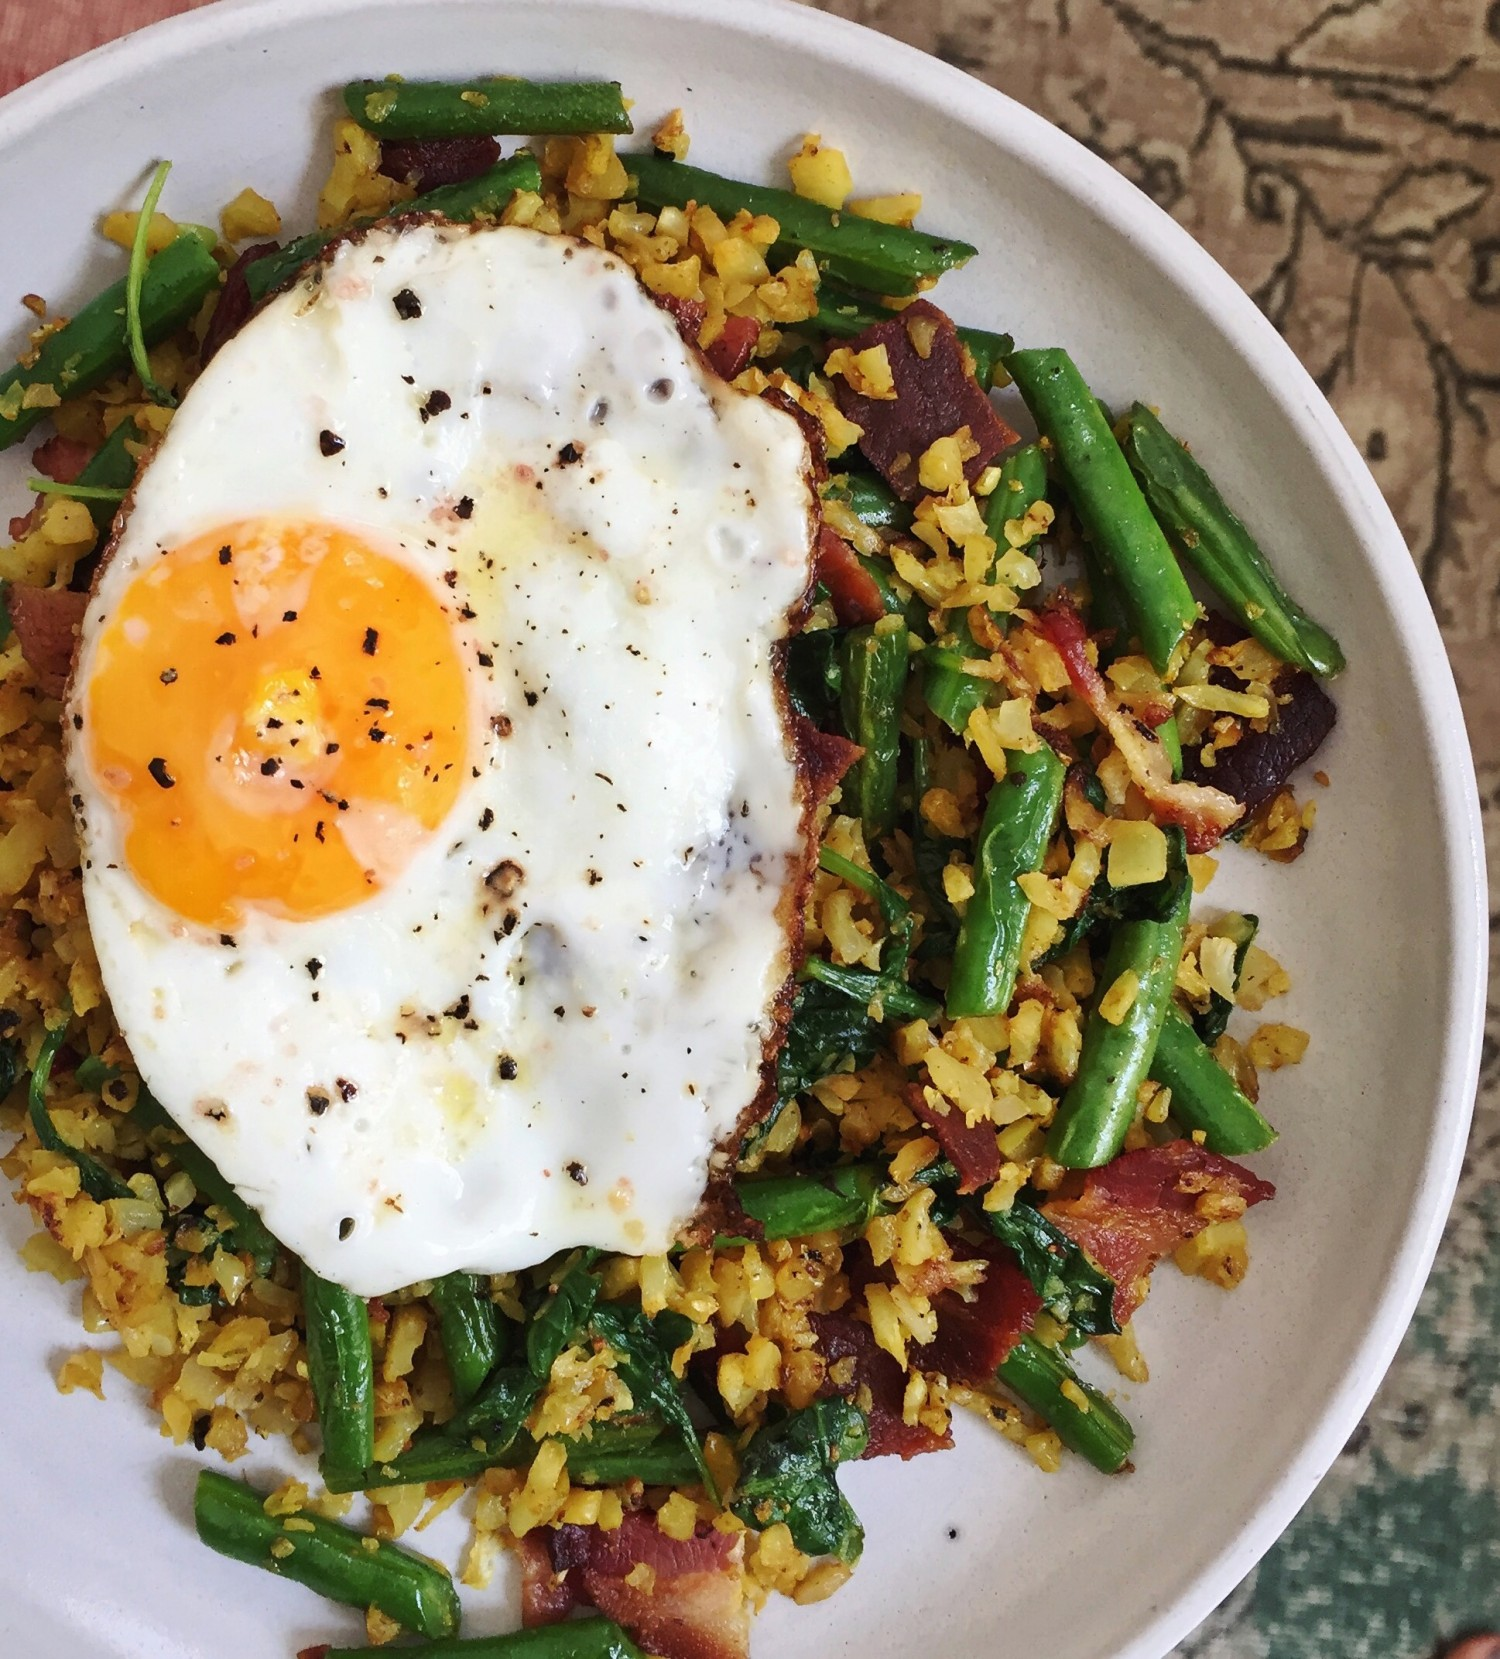 Above view of a cauliflower rice stir fry with bacon and a fried egg